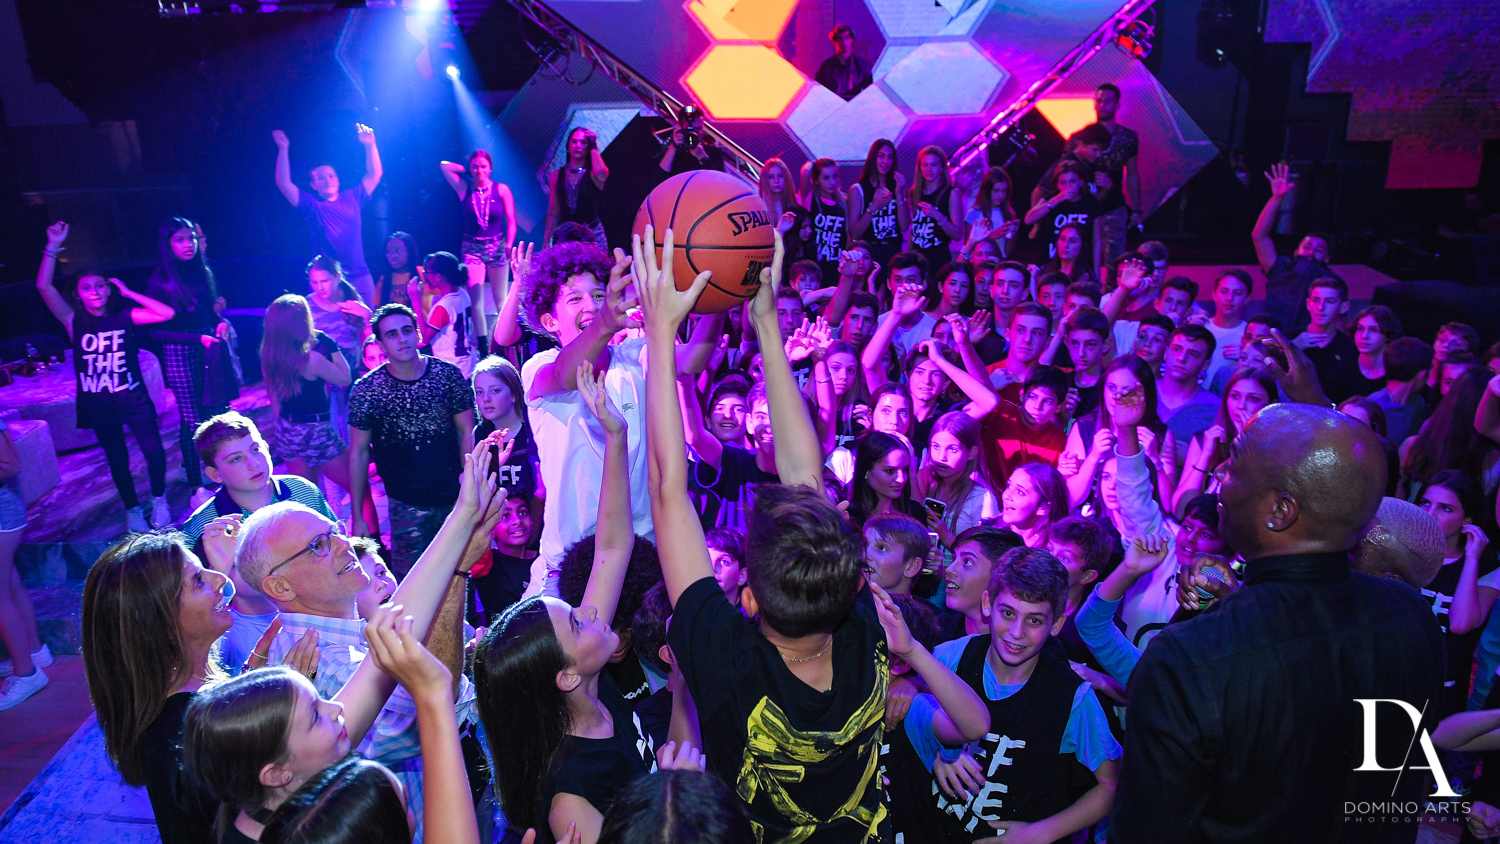 fun party at Urban Graffiti BNai Mitzvah with celebrity Shaq at Xtreme Action Park by Domino Arts Photography